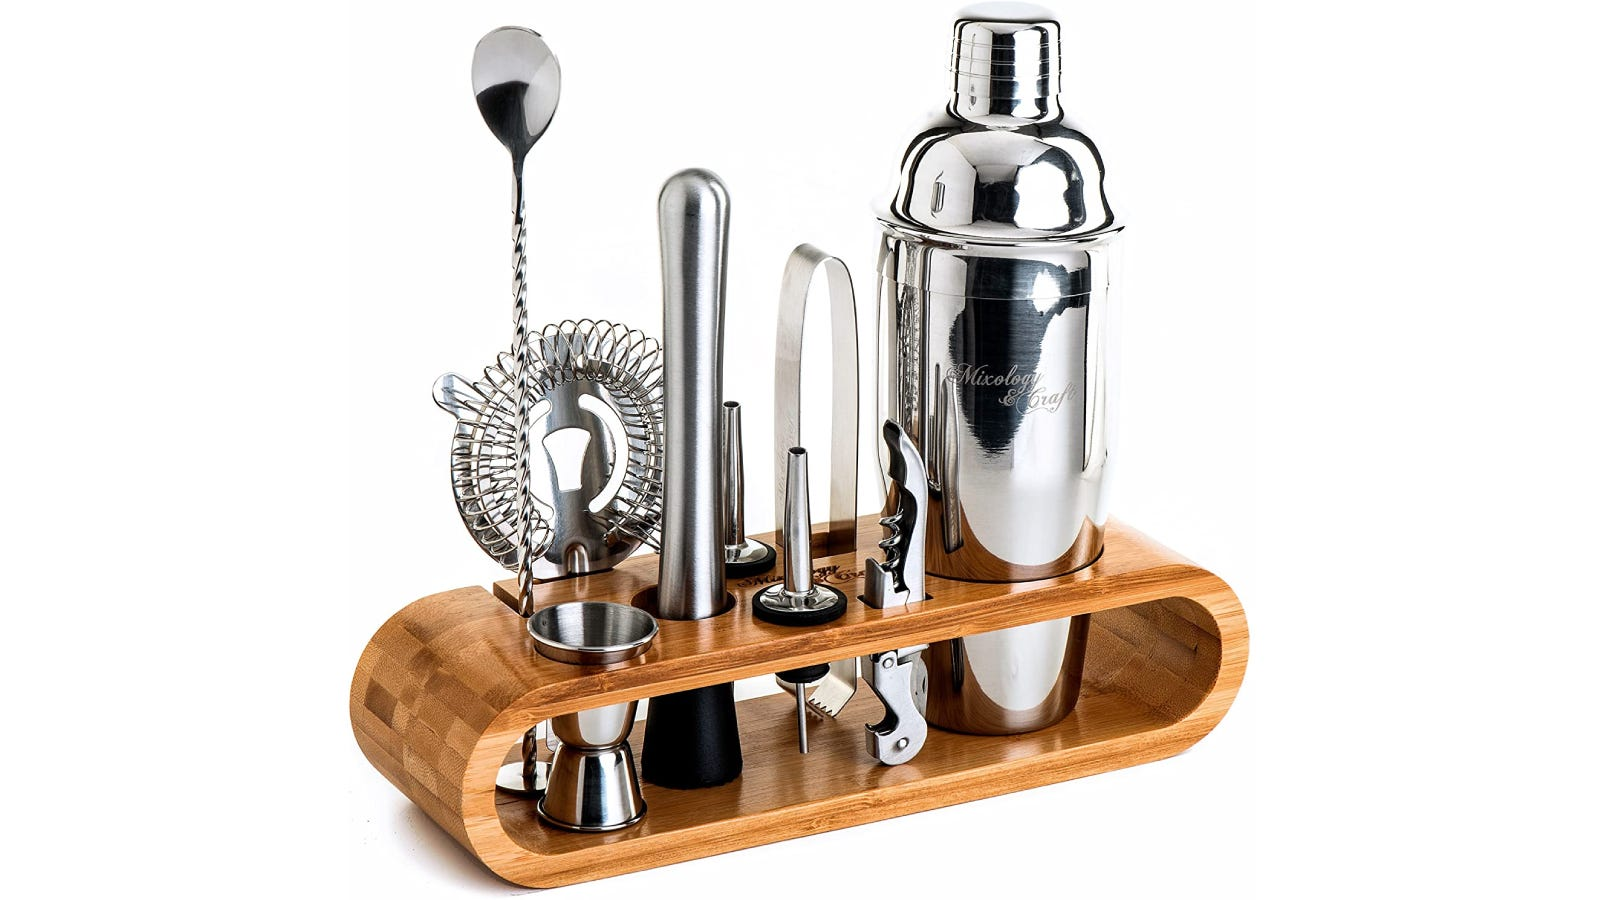 silver Parisian cocktail shaker in bamboo stand with tools that include spoon, jigger, strainer, and muddler